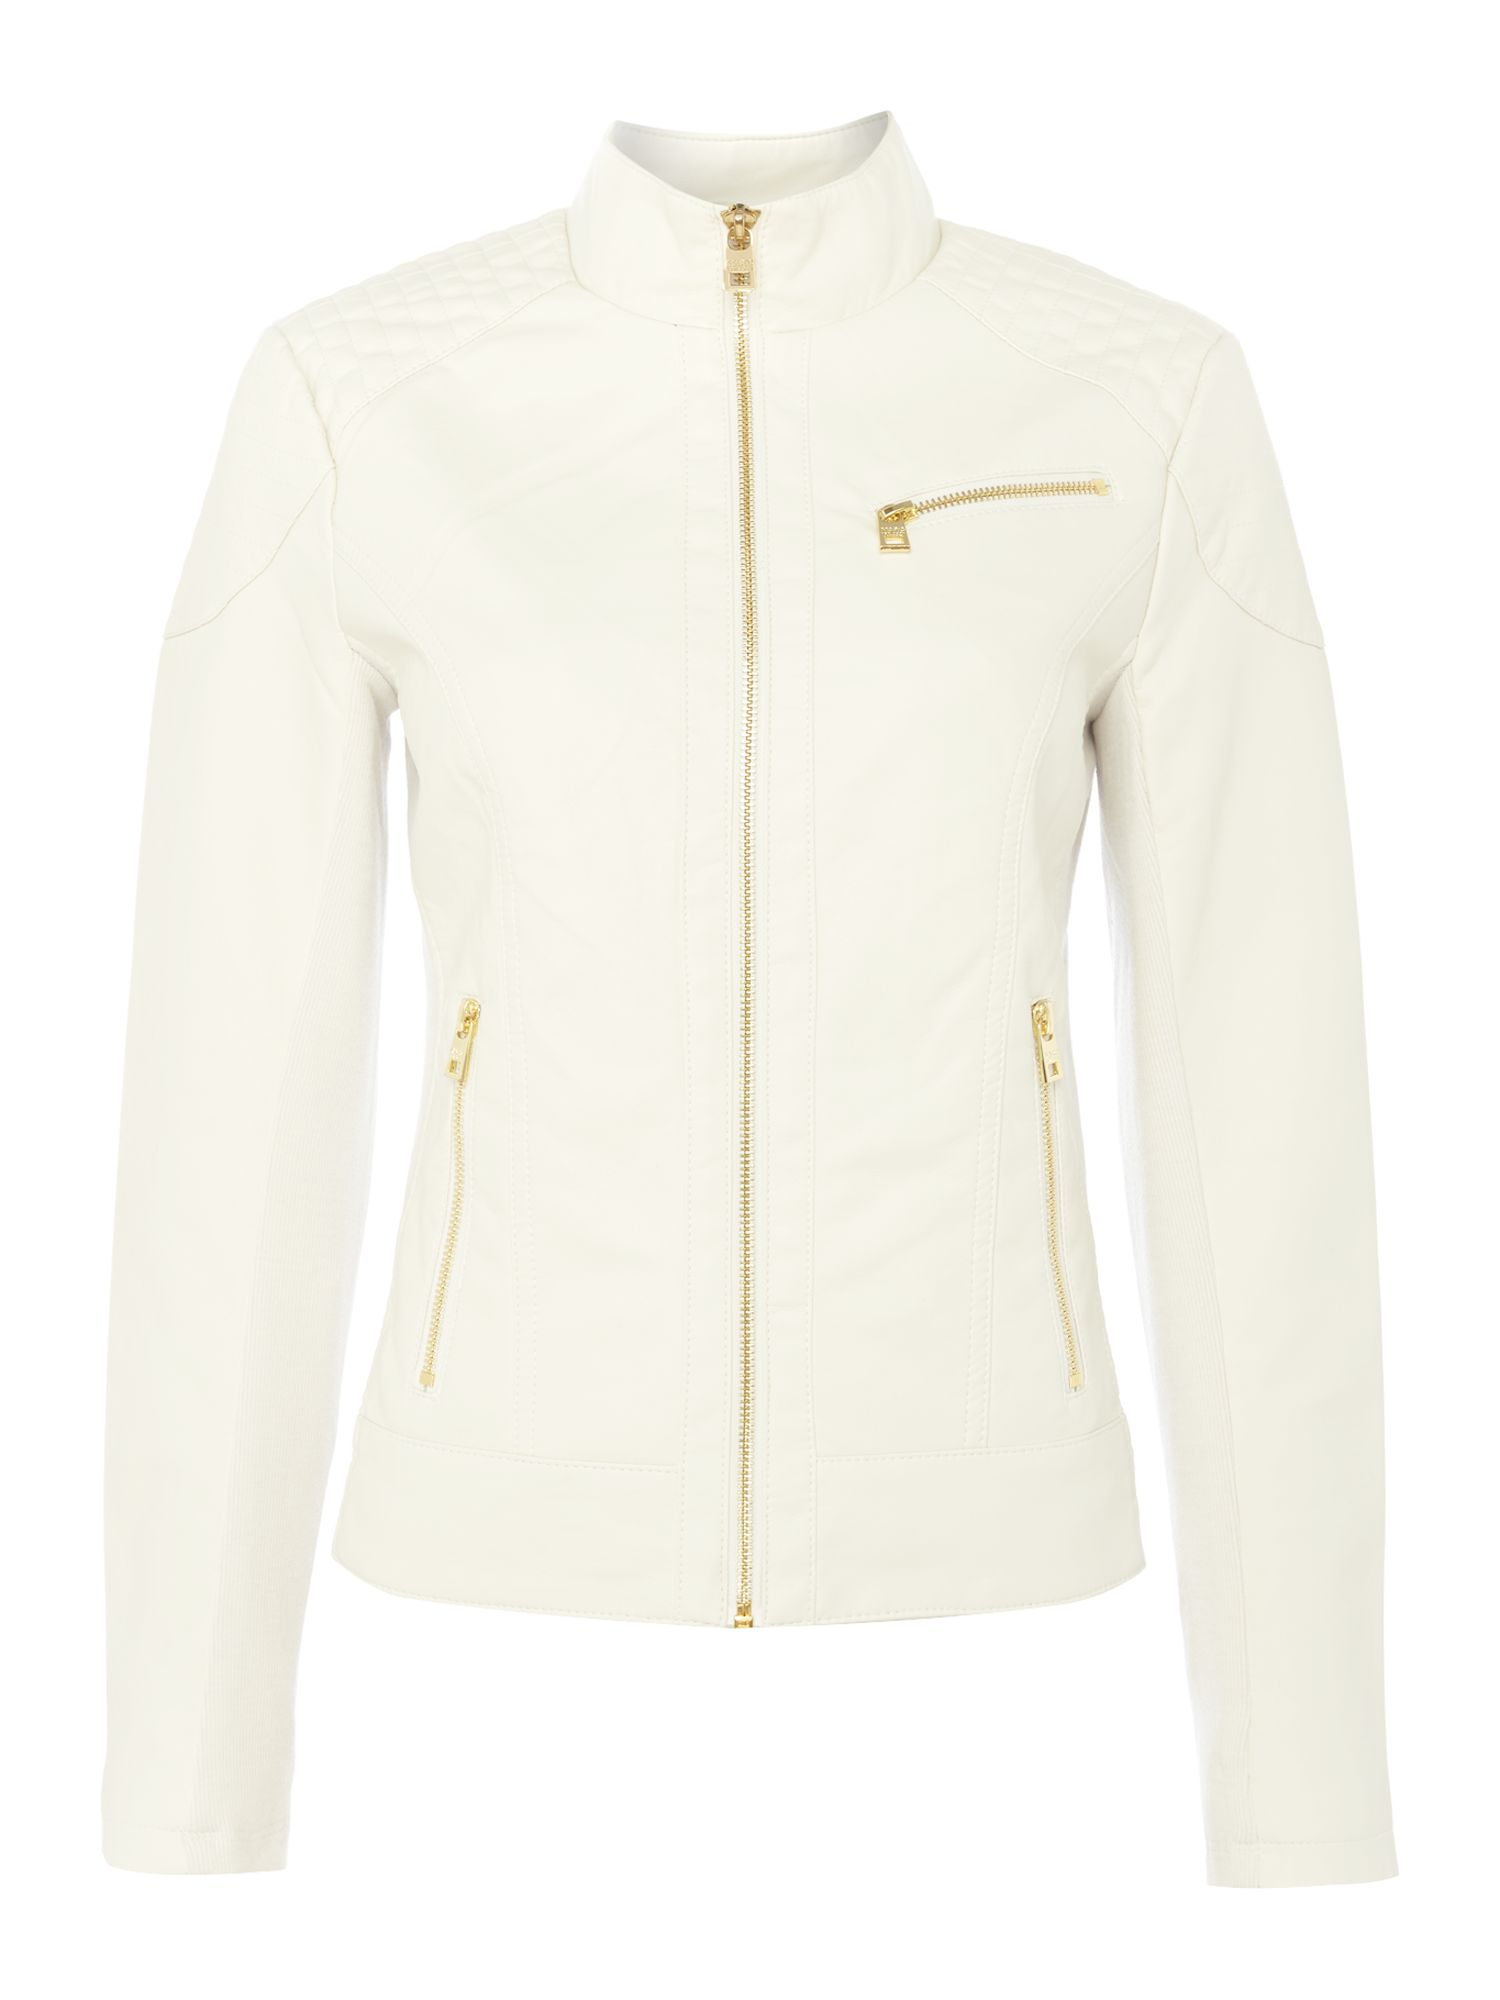 Andrew Marc PU jacket with jersey side panels, White